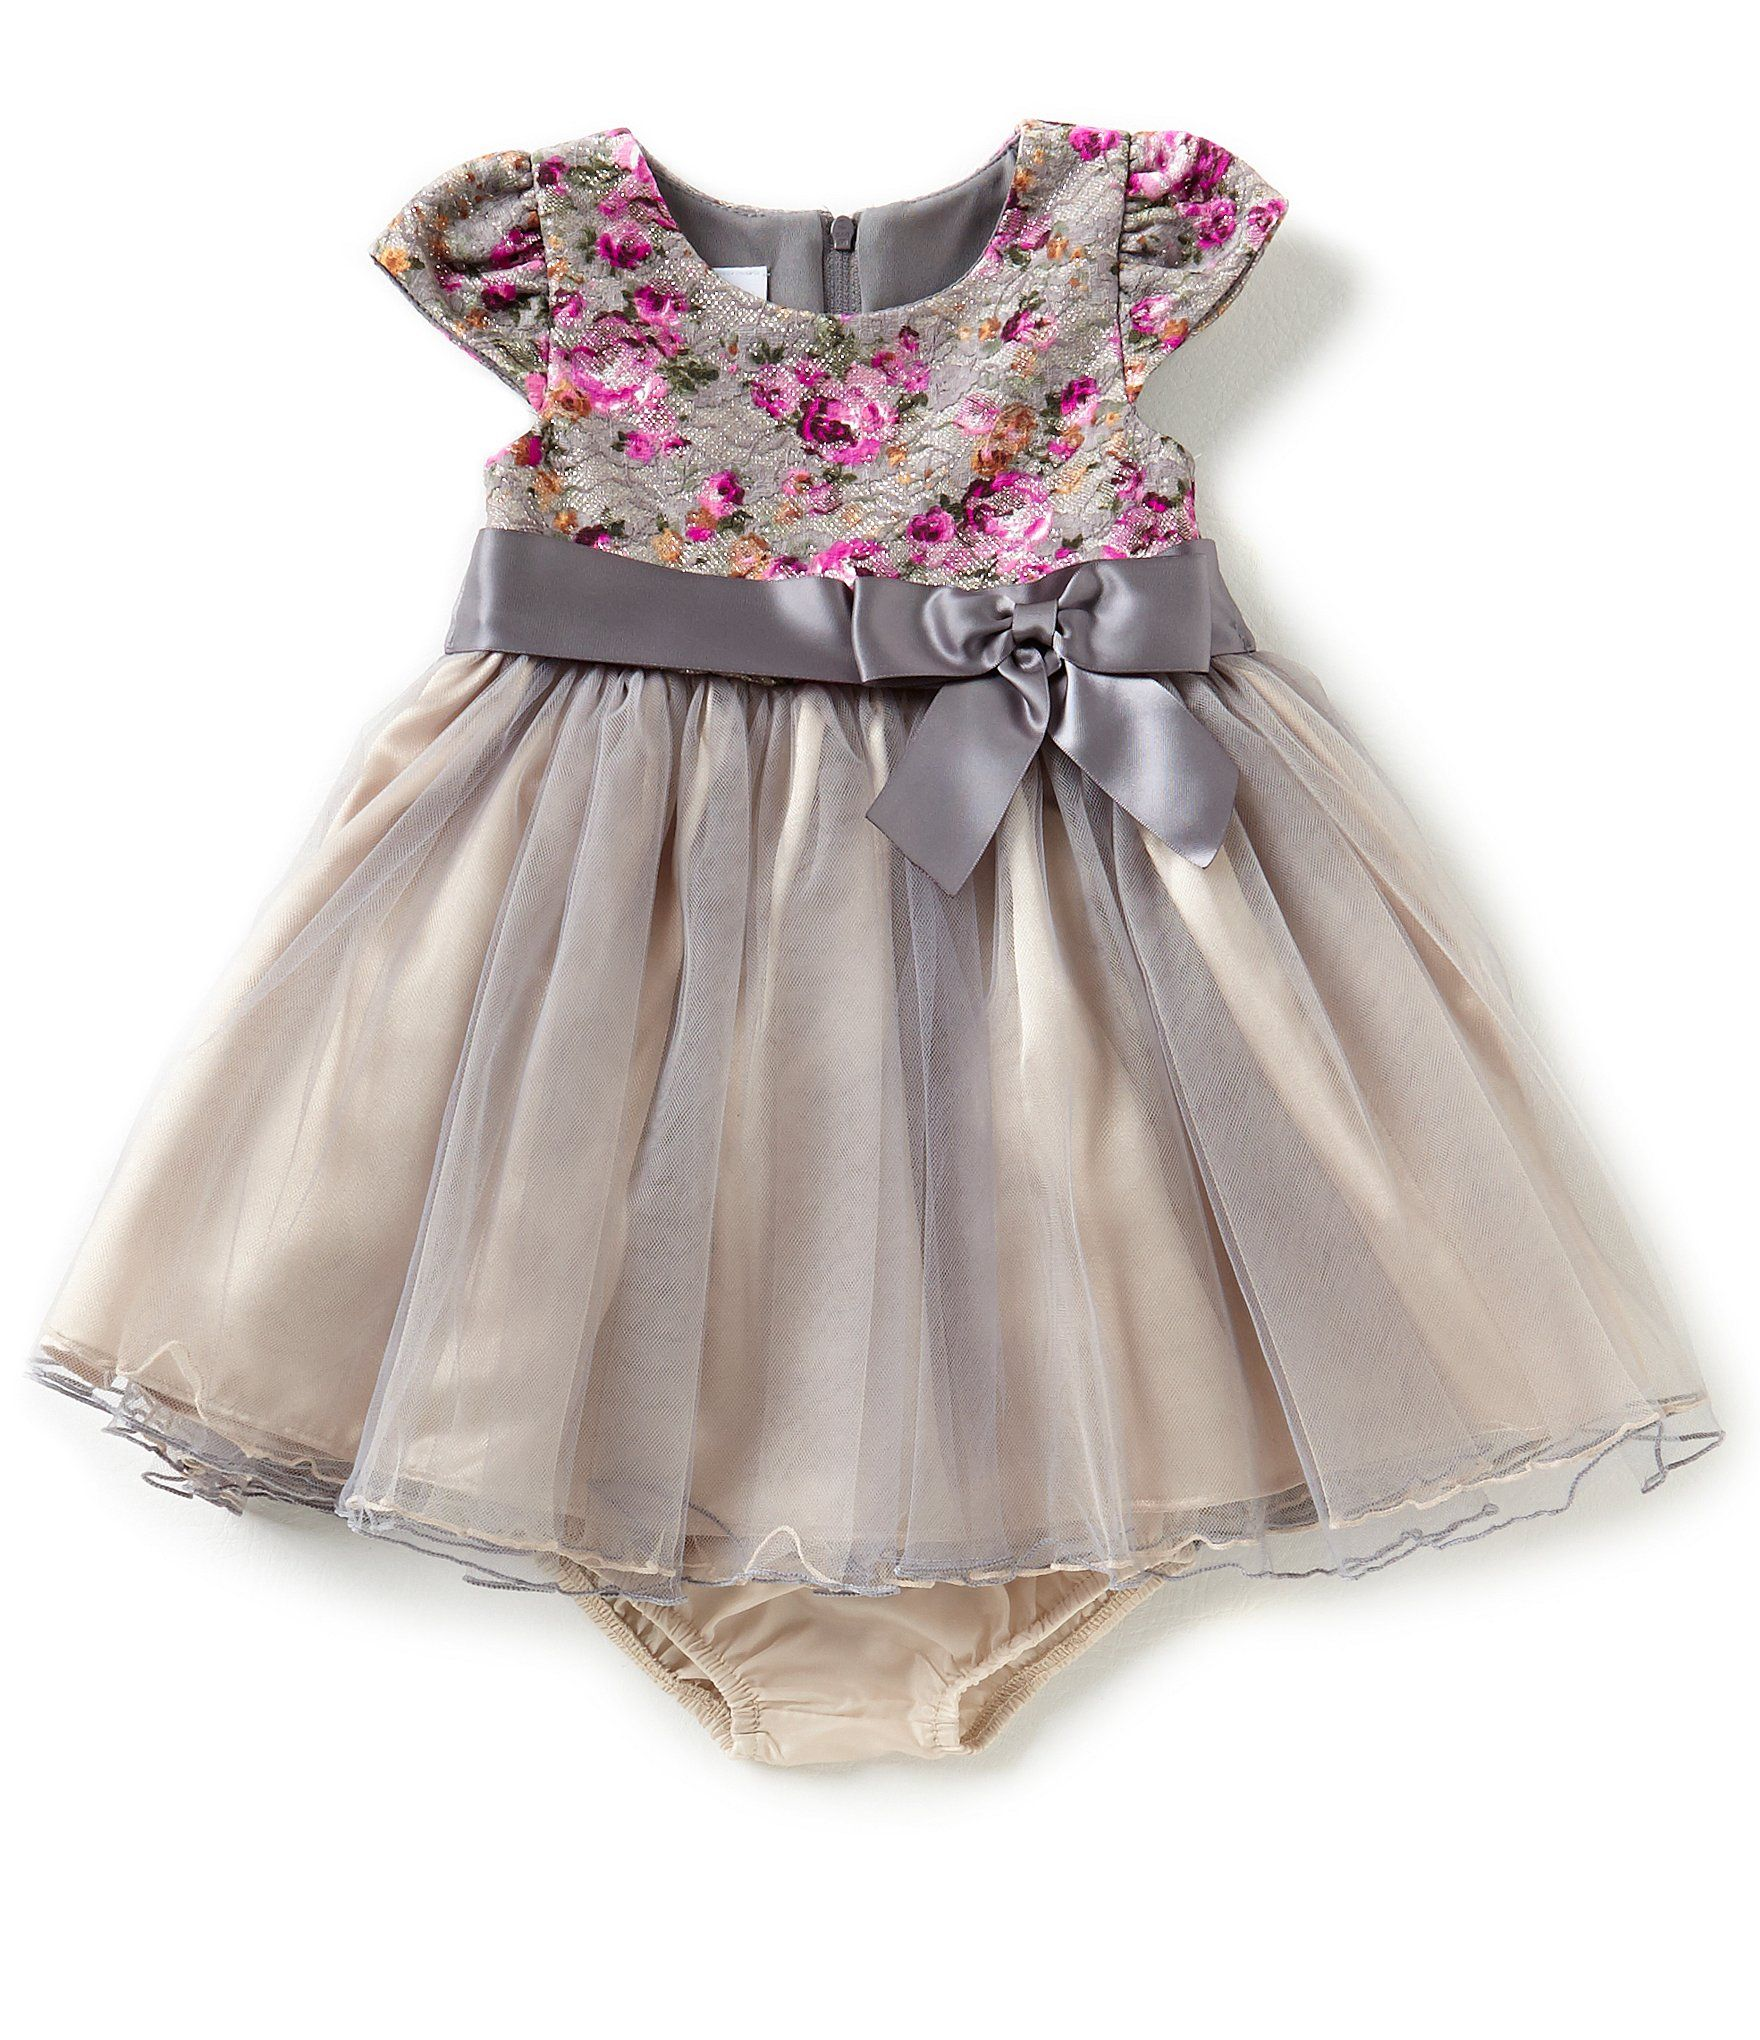 Bonnie Jean Baby Girls Newborn24 Months Floral Lace and Tulle ALine